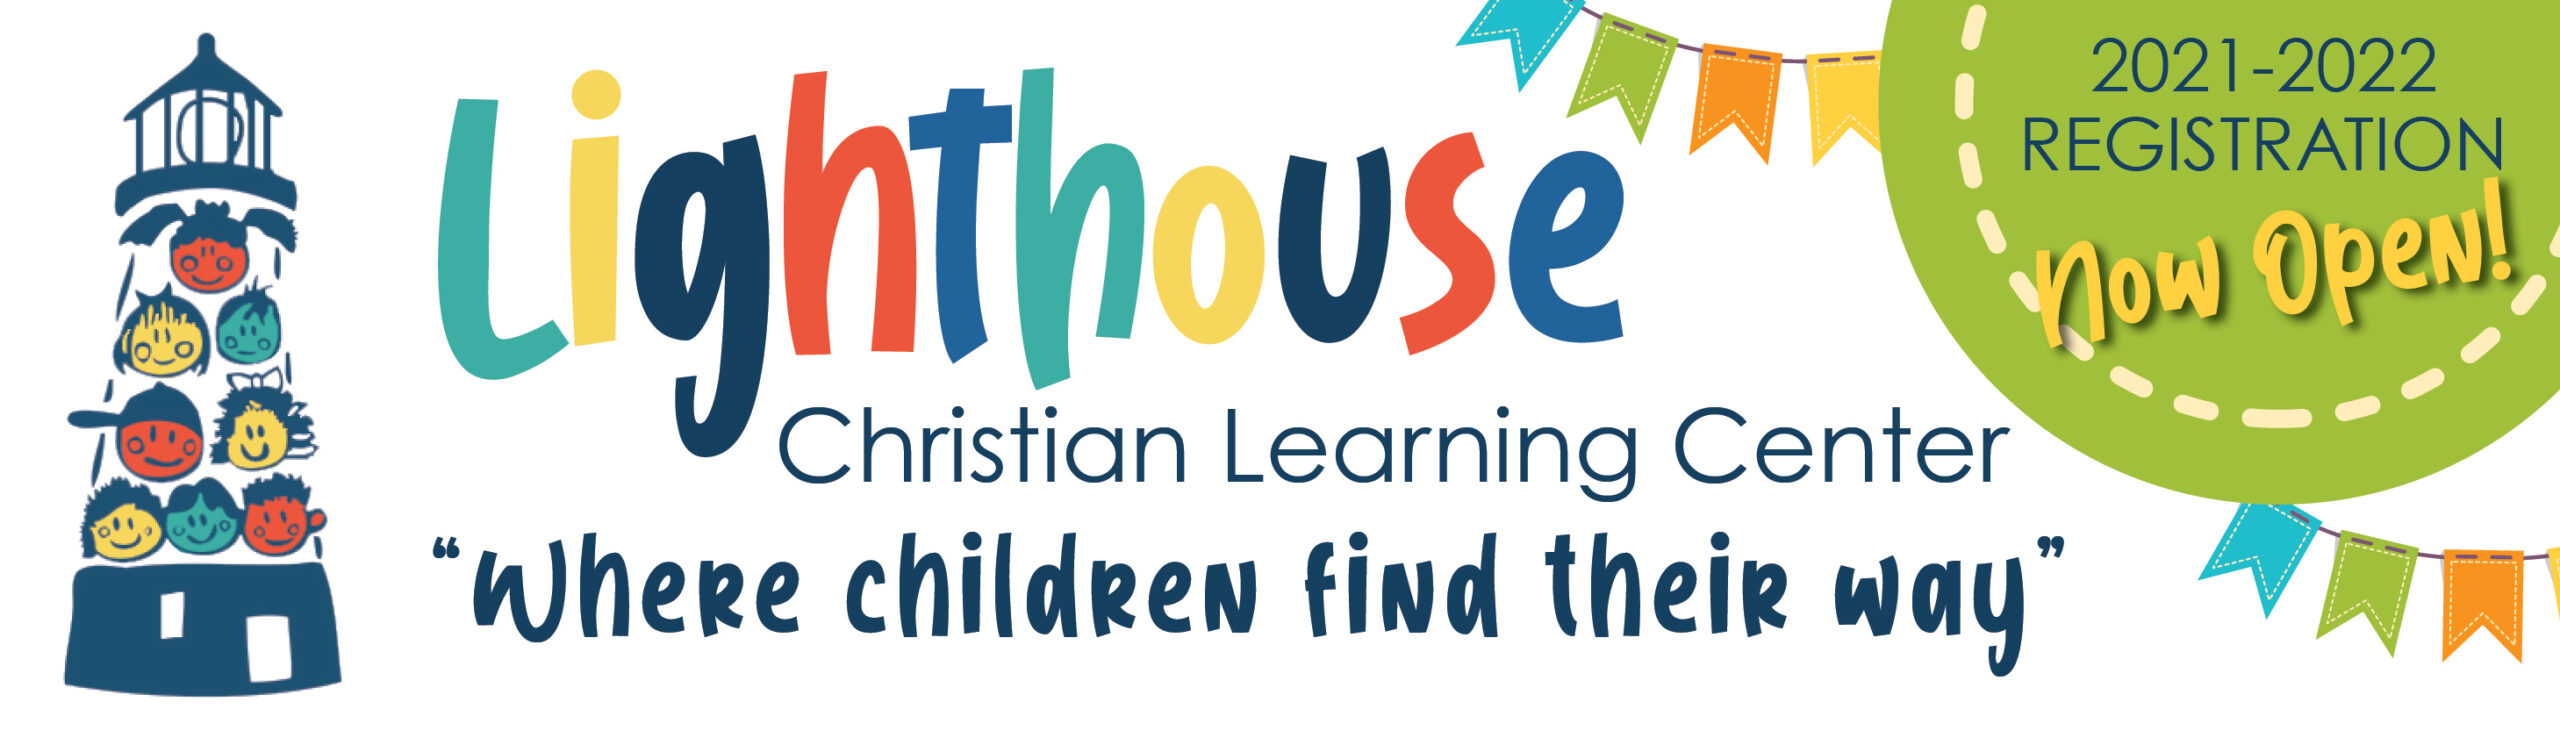 Lighthouse Christian Learning Center